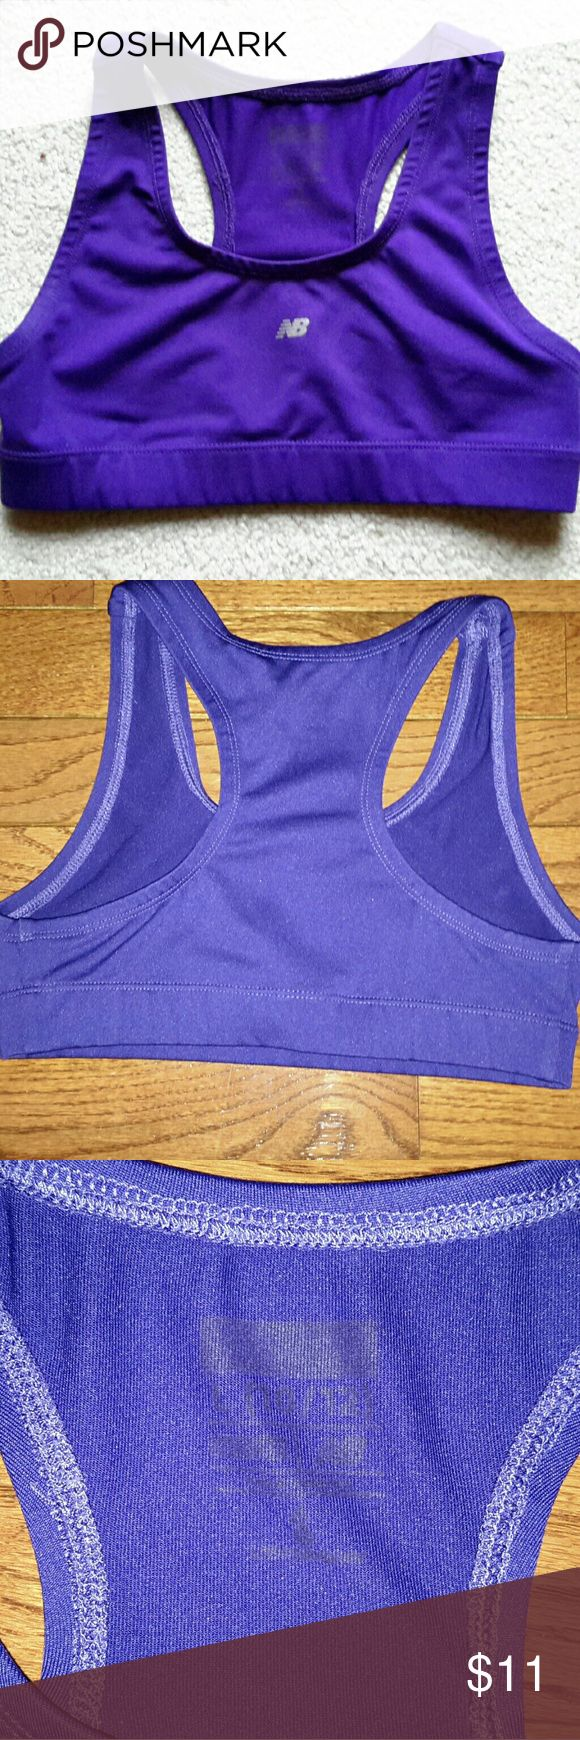 Girl's New Balance Sports Bra New Balance purple racer-back sports bra, 90% polyester and 10% spandex, girl's size large (10-12). Good condition. Smoke free home. New Balance Other